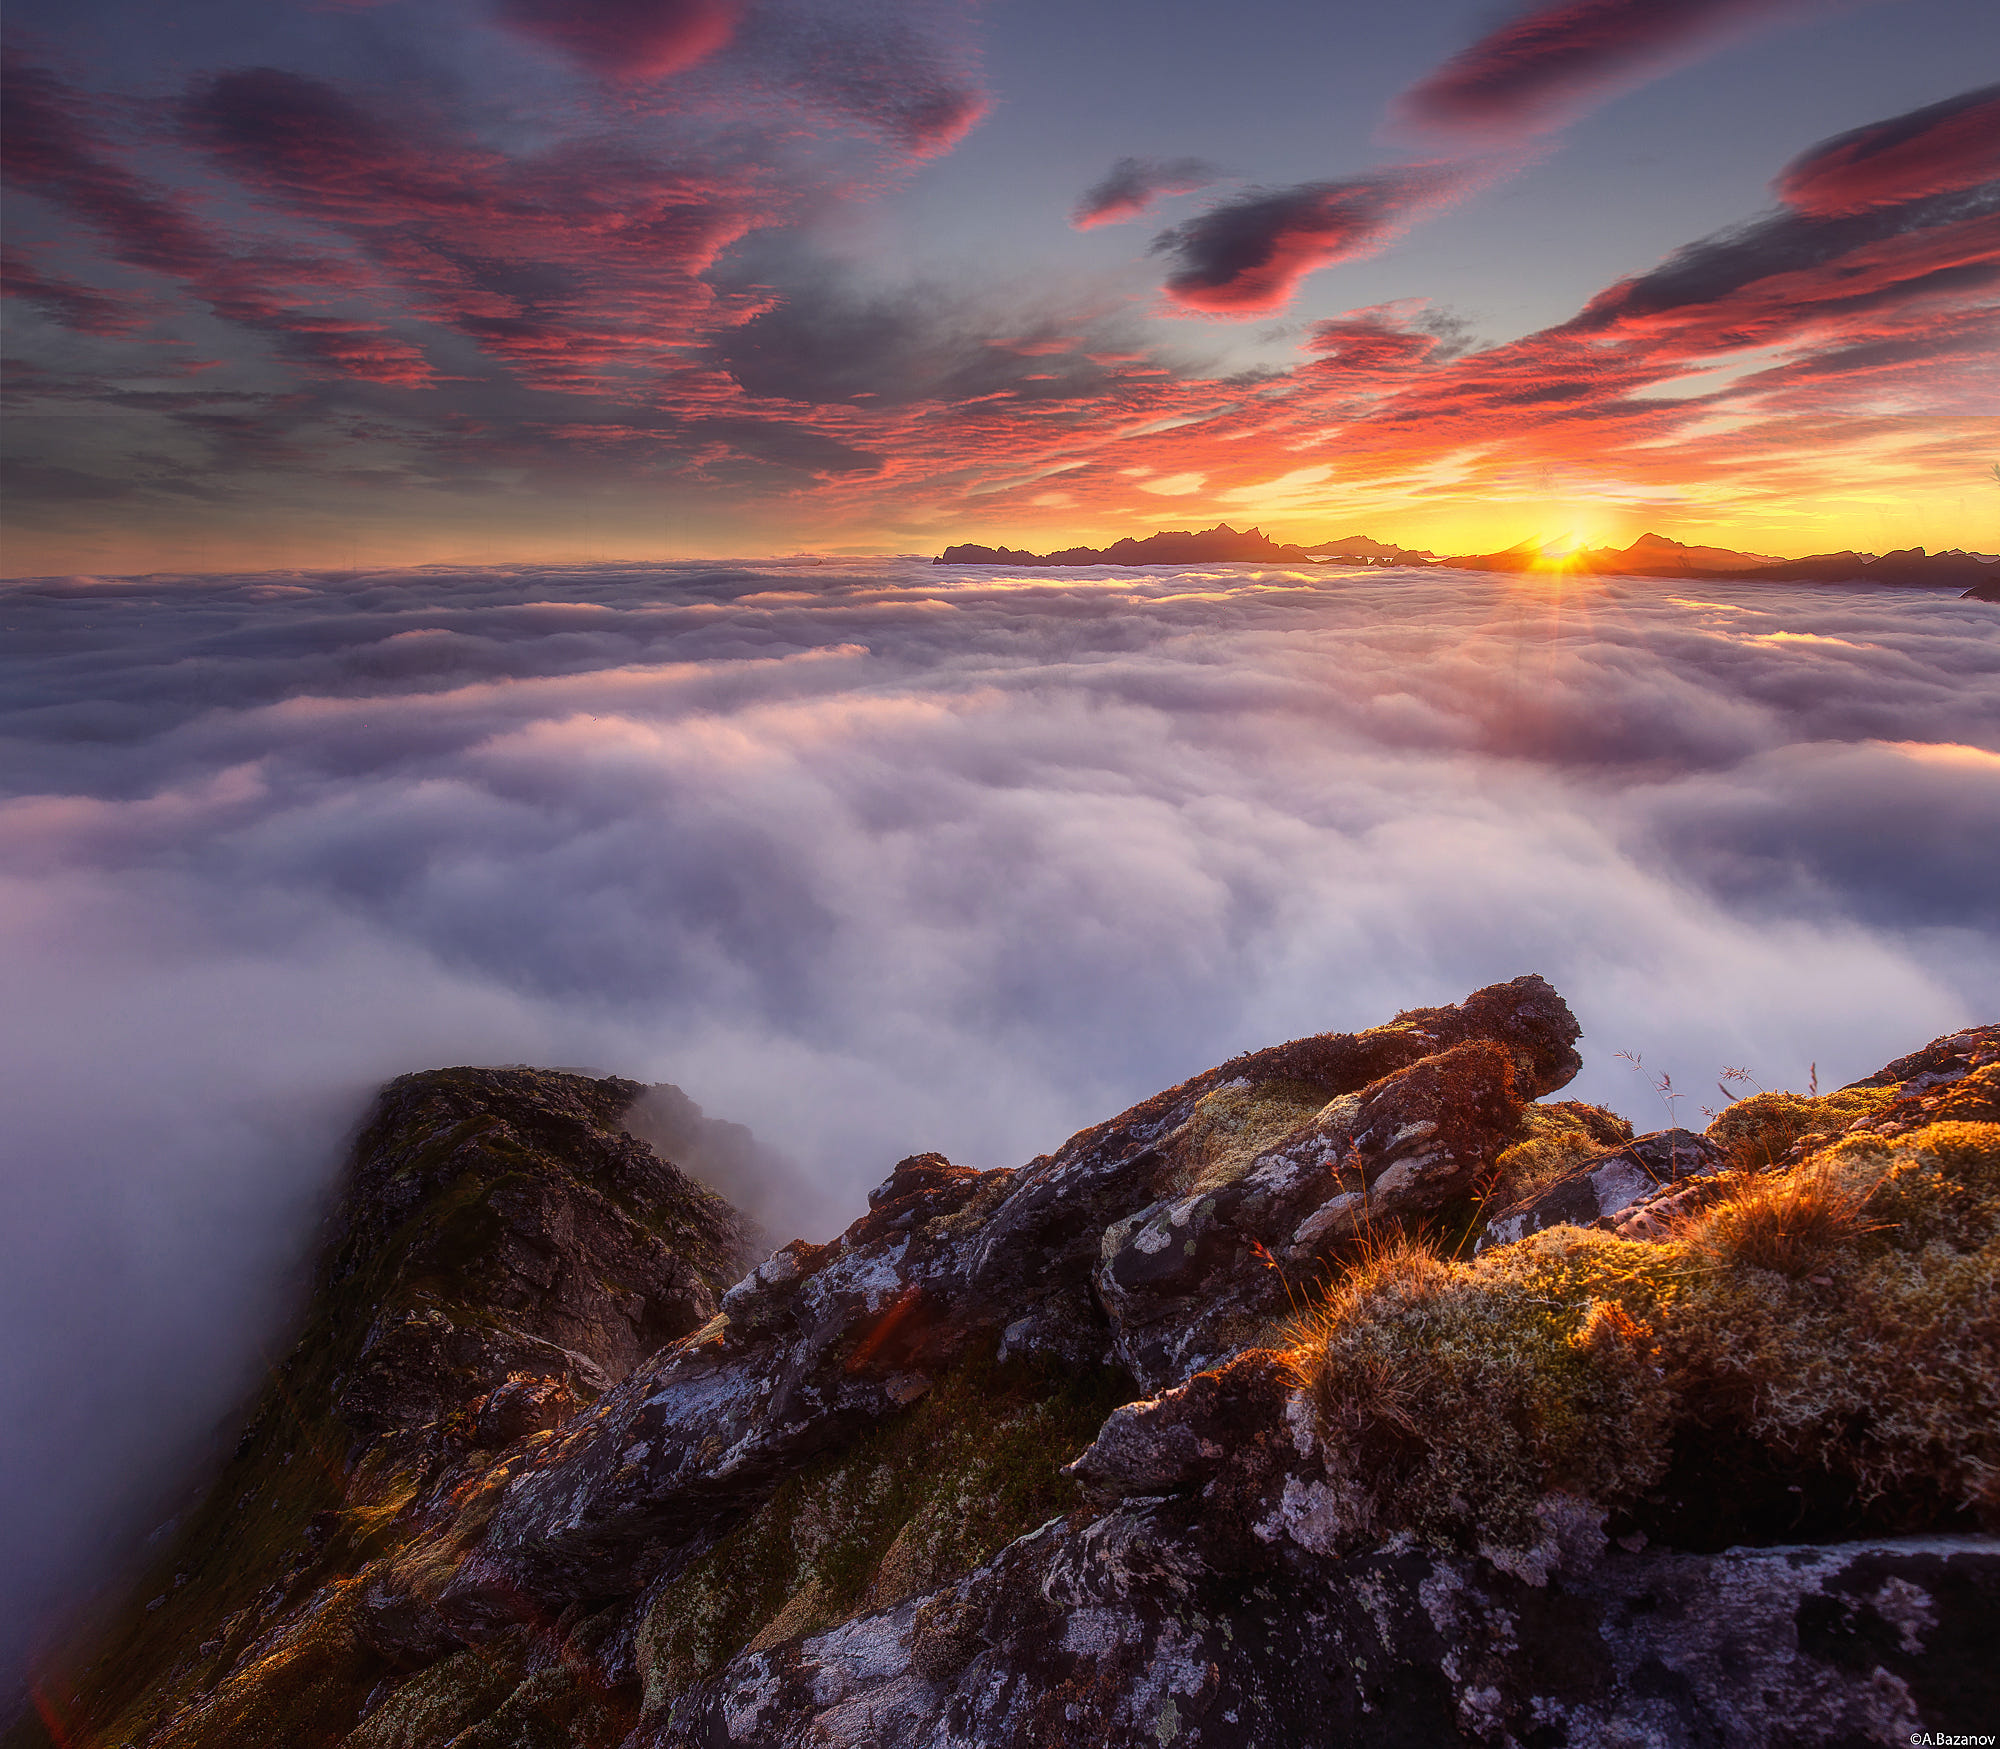 Above cloud cover